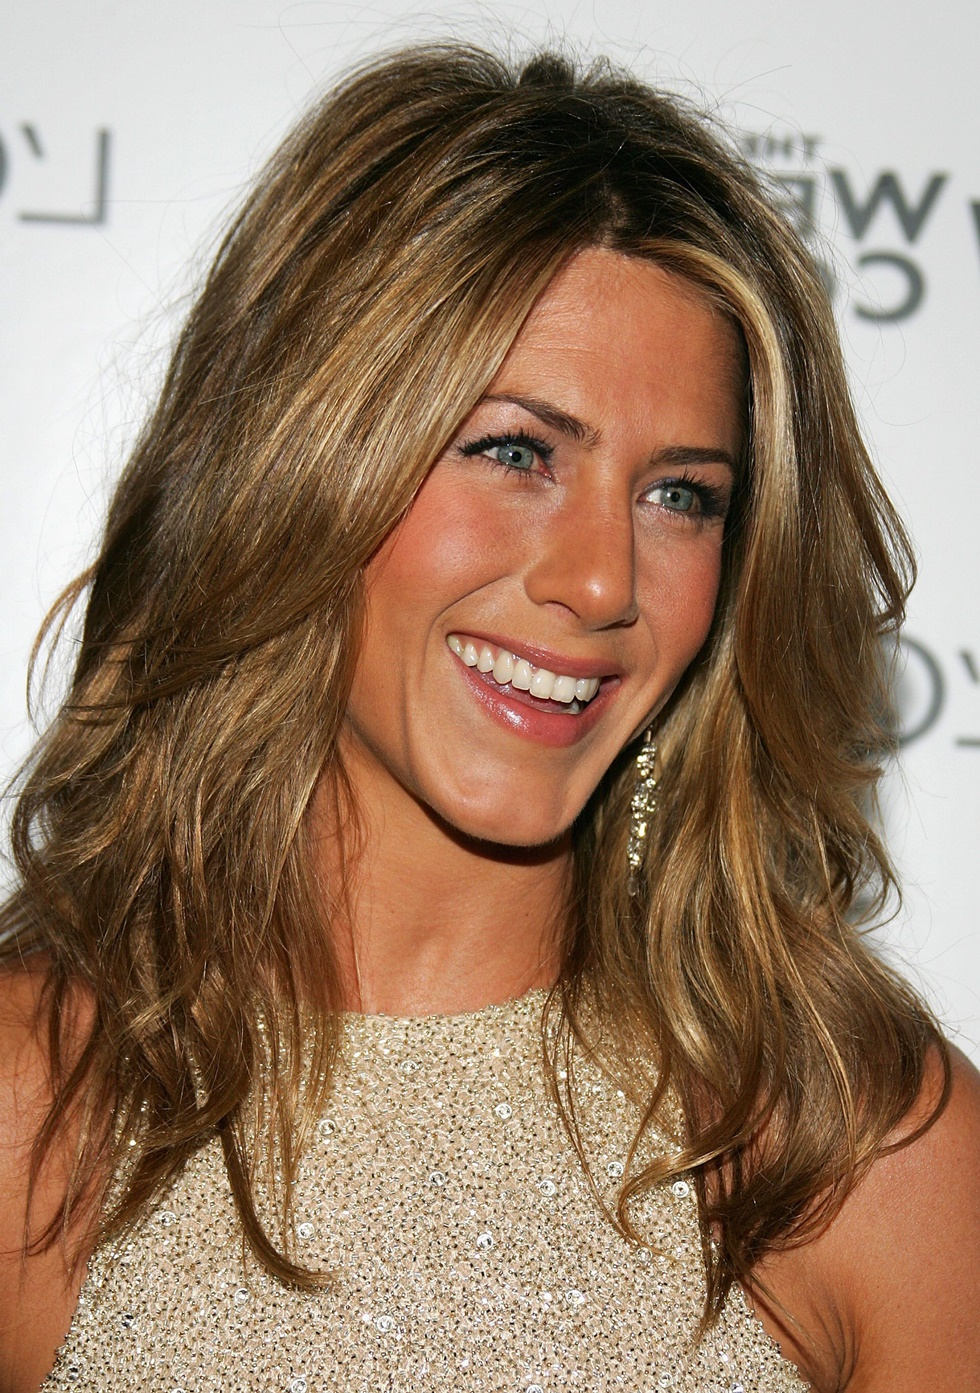 20 Best Long Hairstyles for Women Over 20